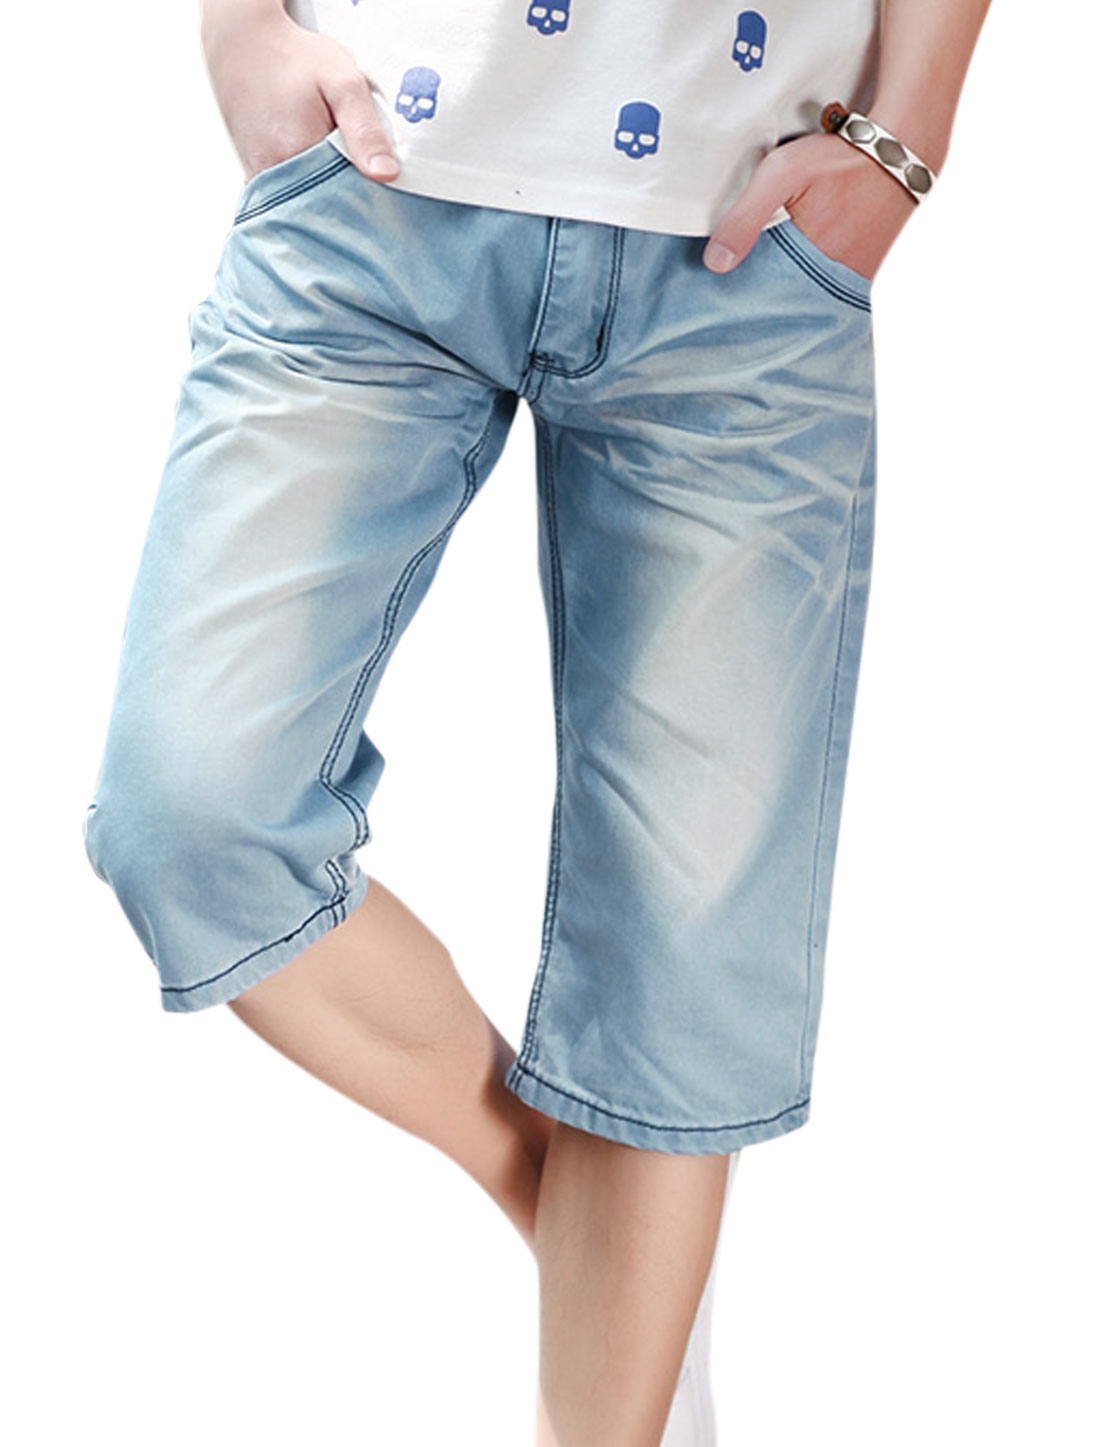 Man Zip Fly Single Button Closure Front Hip Pockets Jeans Shorts Blue W32